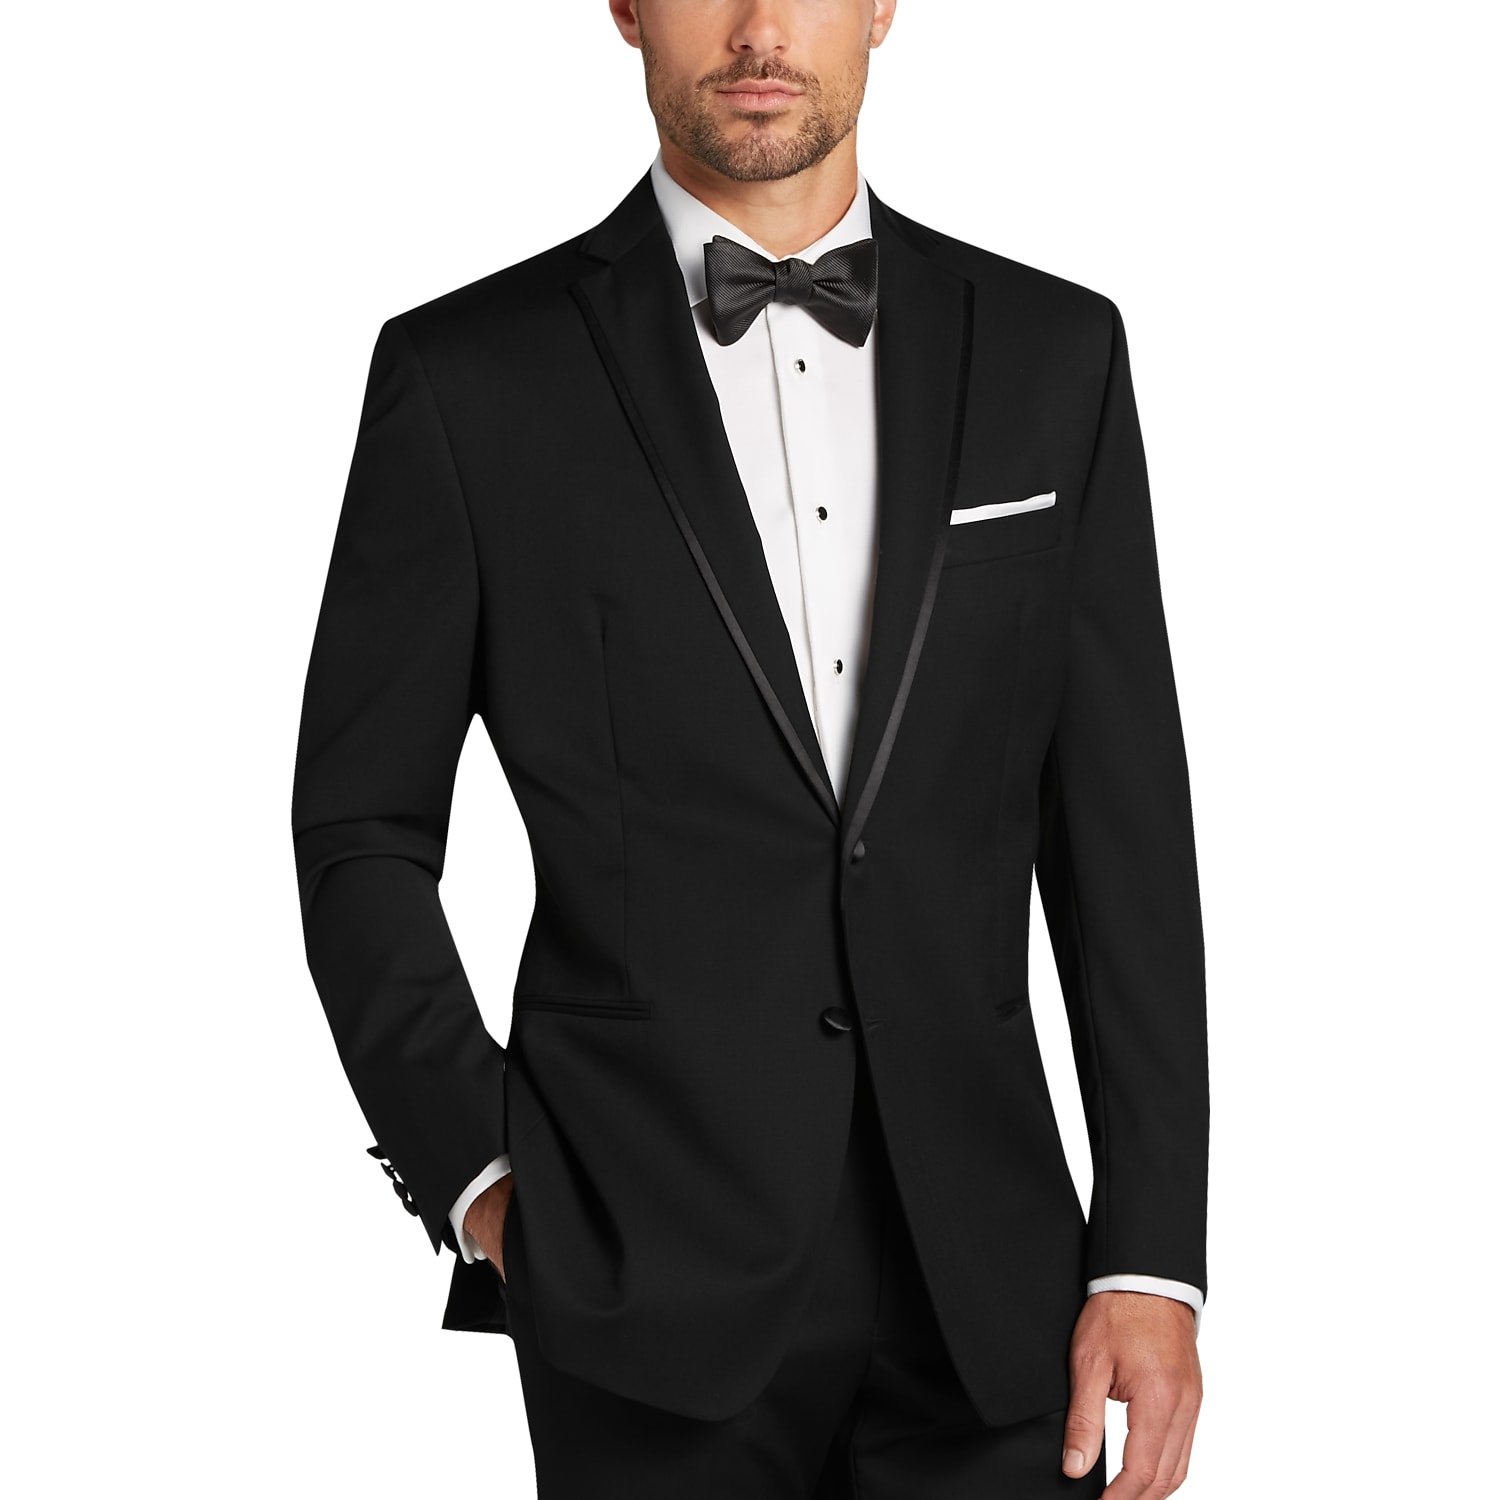 Men S Tuxedo Black Tie Tuxes Shop Formal Suits Men S Wearhouse